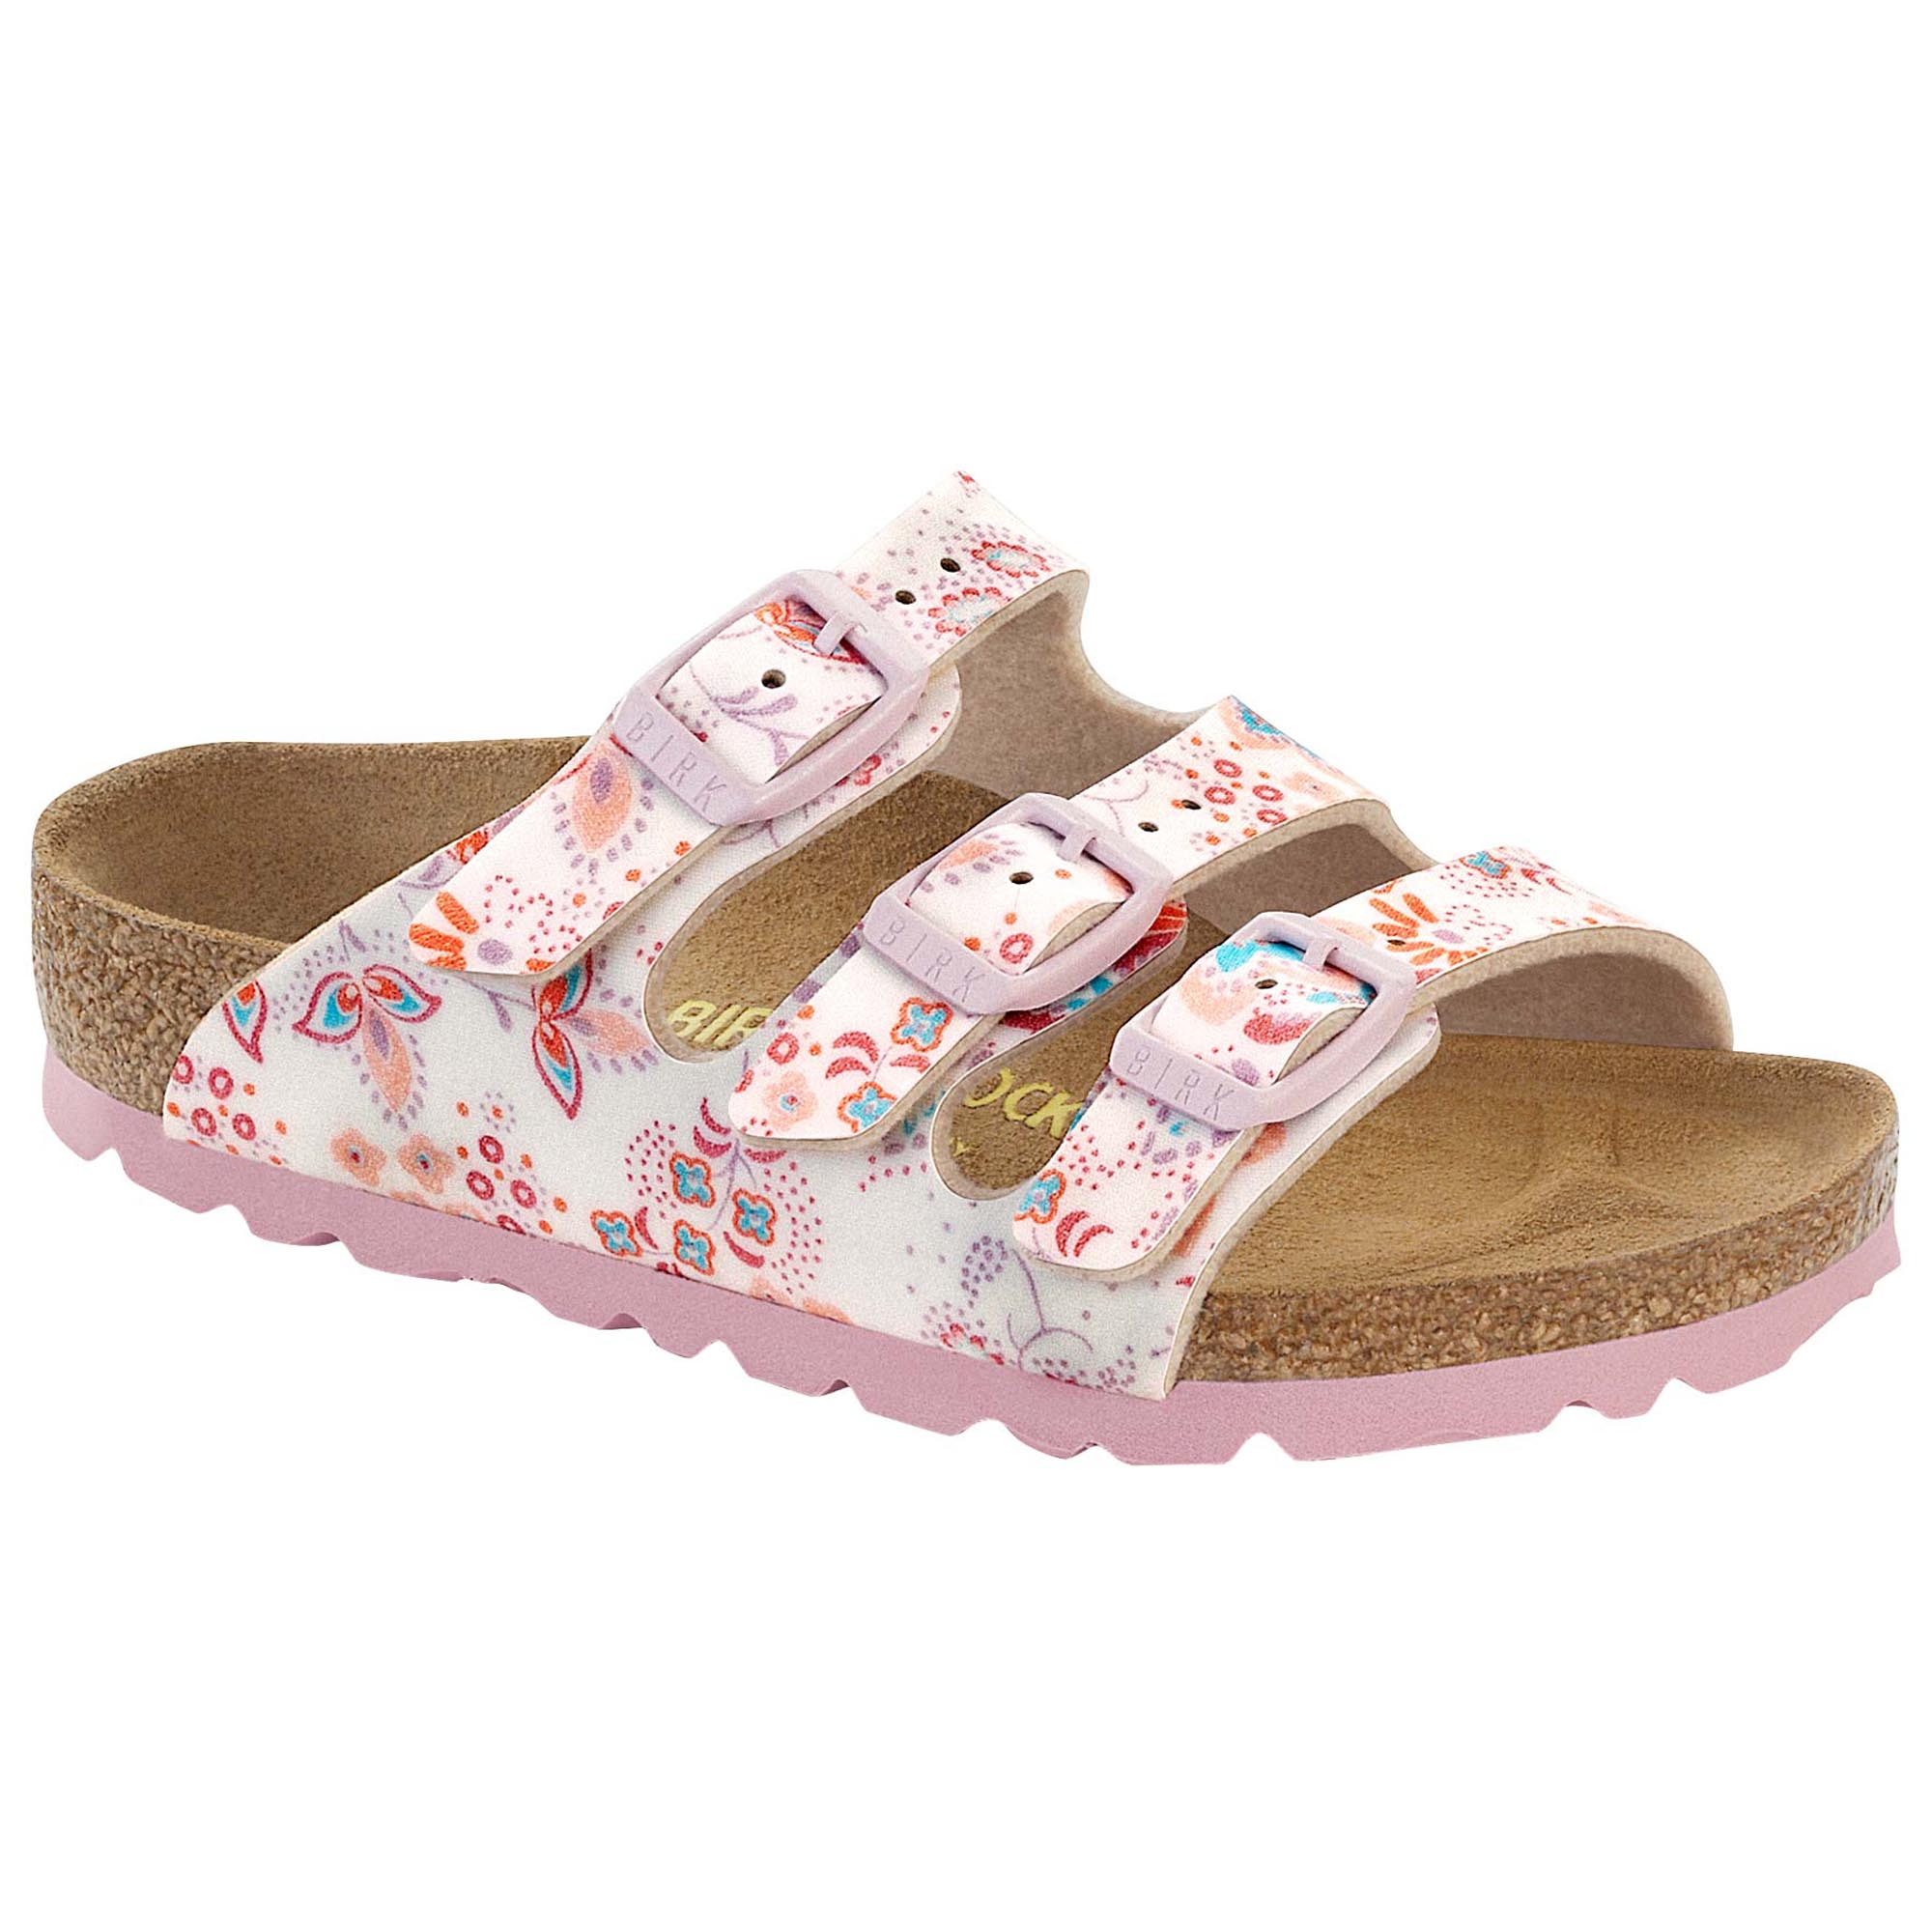 Florida Birko Flor Cute Flowers Rose Shop Online At Birkenstock